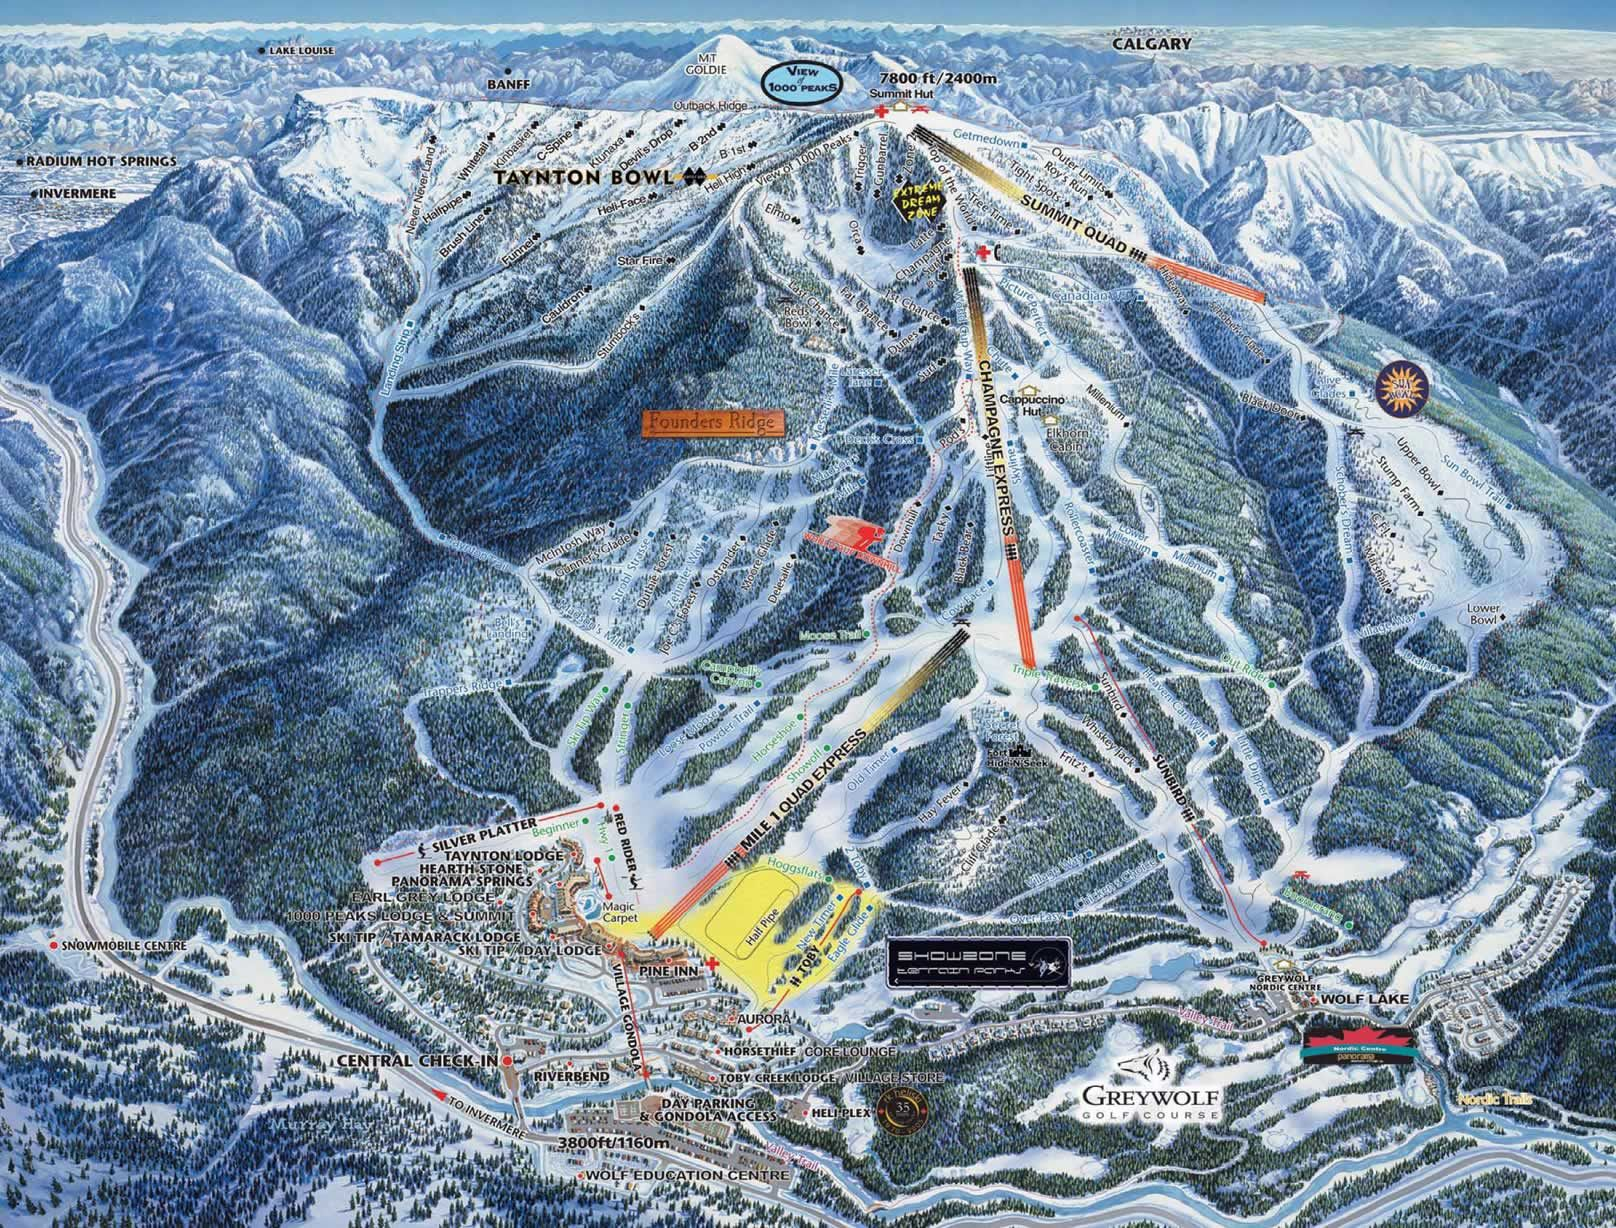 panorama canada ski resort lift map. loved skiing here.   places i